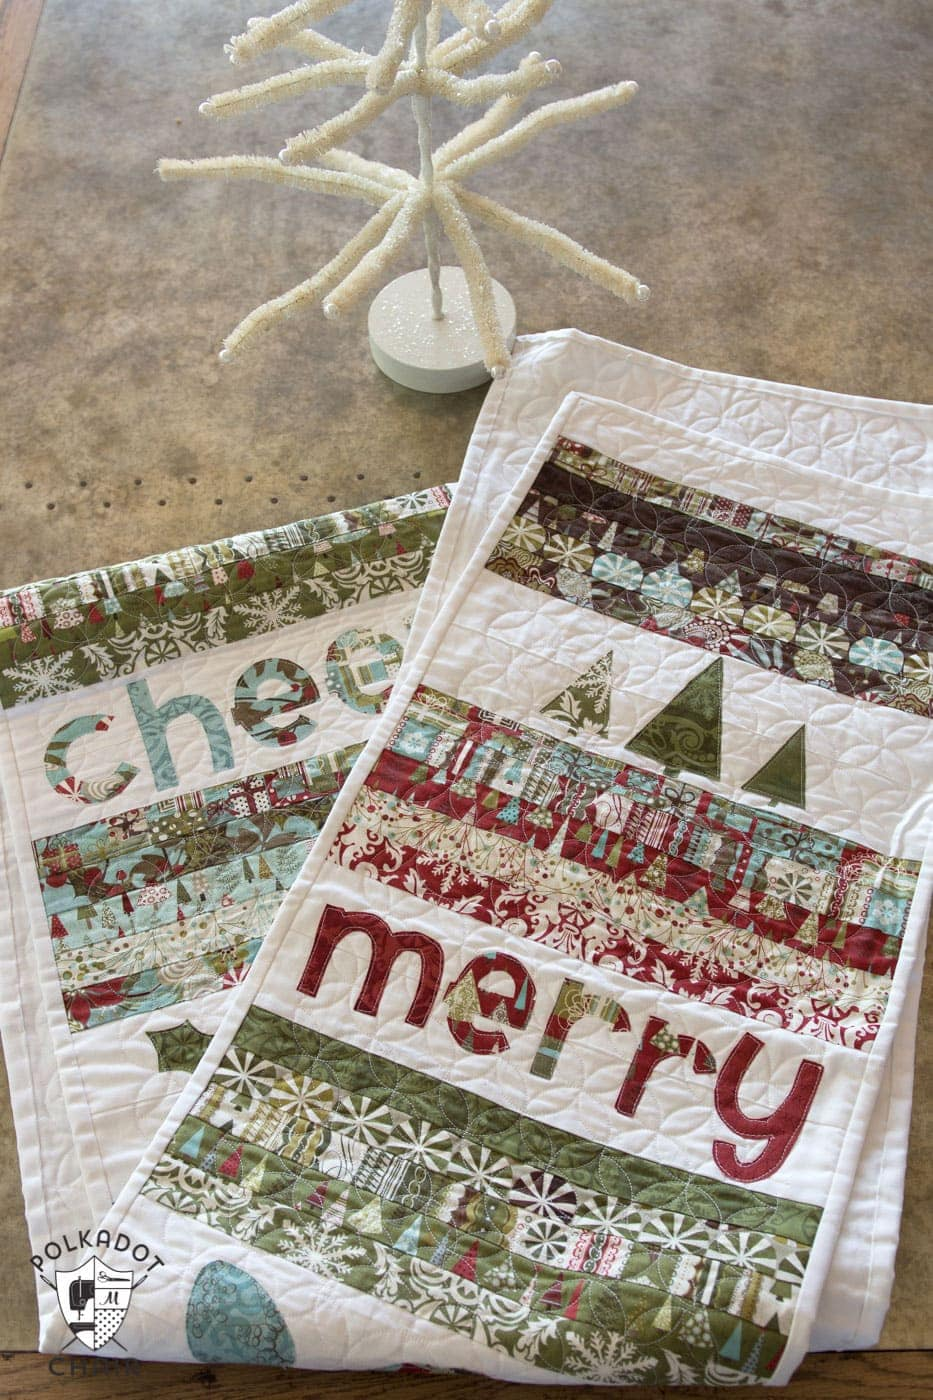 Christmas Table Runner Patterns Free.Merry Cheer Quilted Christmas Table Runner Pattern The